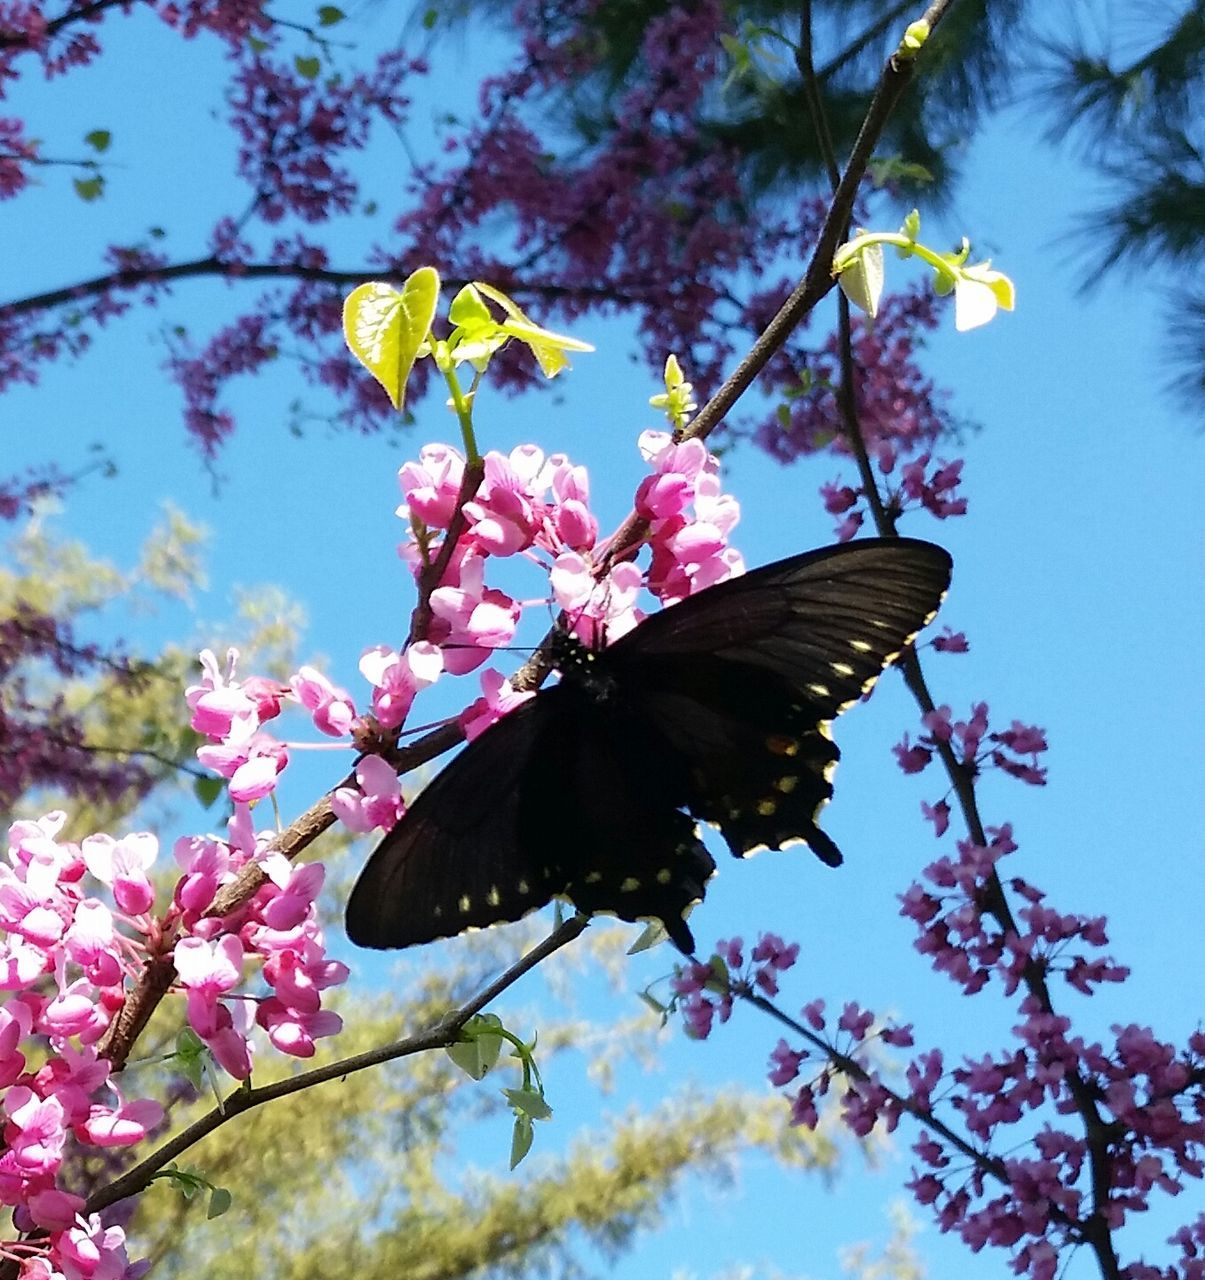 flower, fragility, beauty in nature, branch, pink color, low angle view, growth, freshness, tree, nature, blossom, petal, no people, day, springtime, outdoors, twig, blooming, flower head, close-up, leaf, butterfly - insect, sky